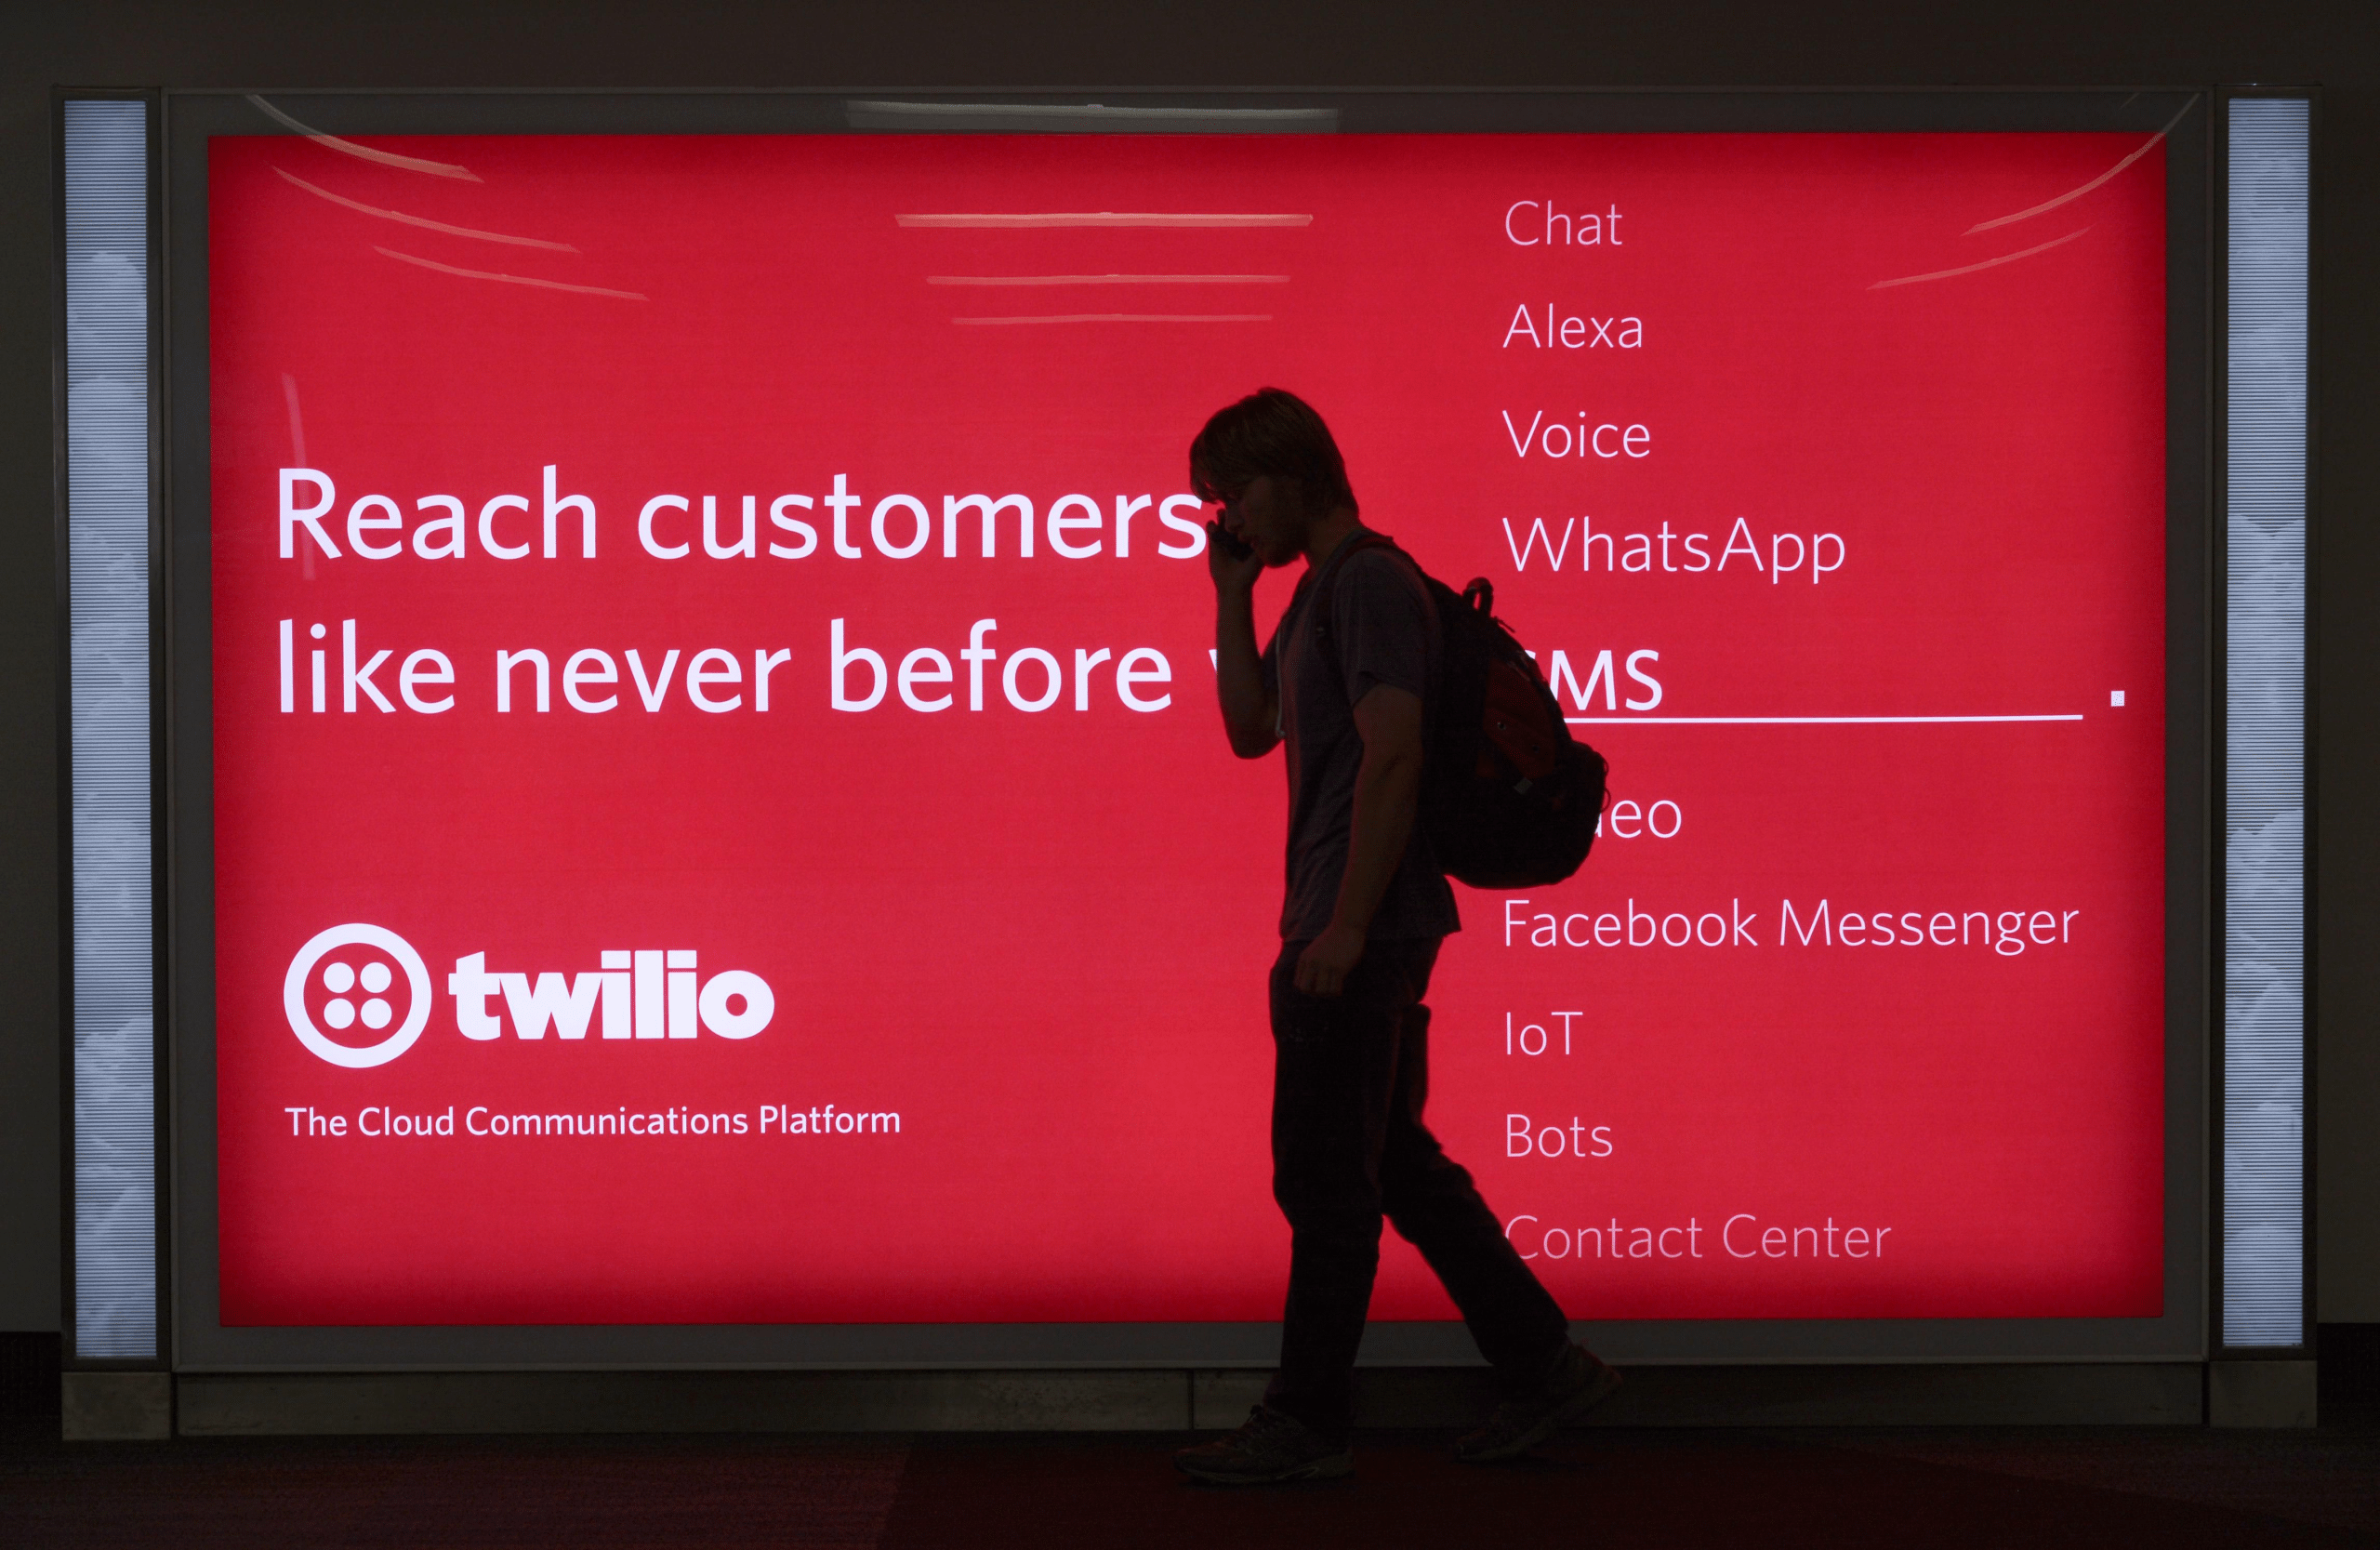 How Two Failures Led To A $3.2 Billion Deal With Twilio